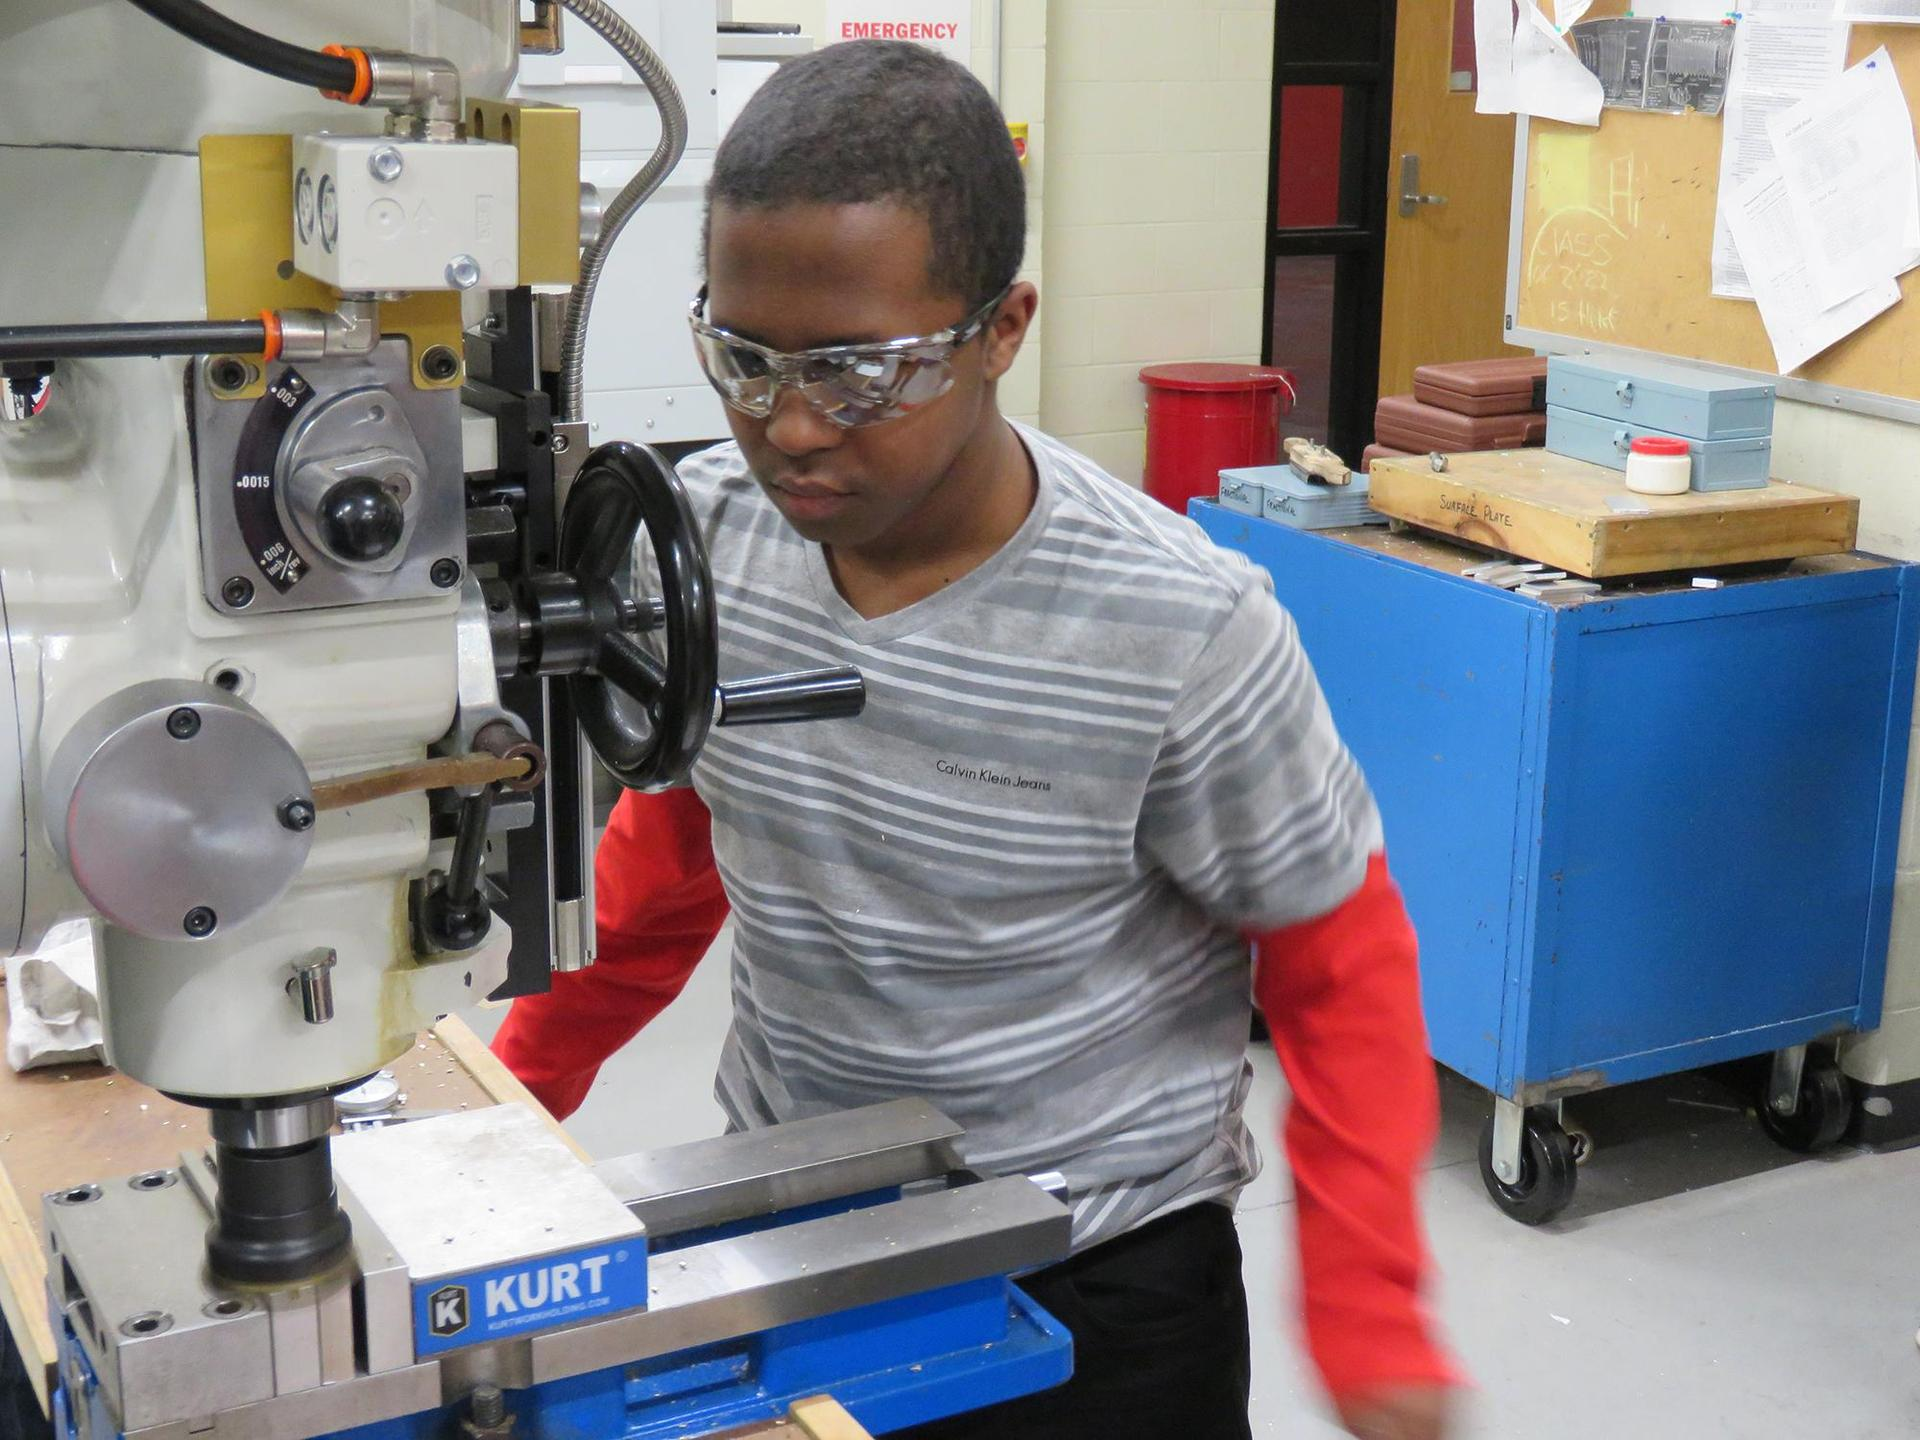 A student works on a project in machine tool technology class